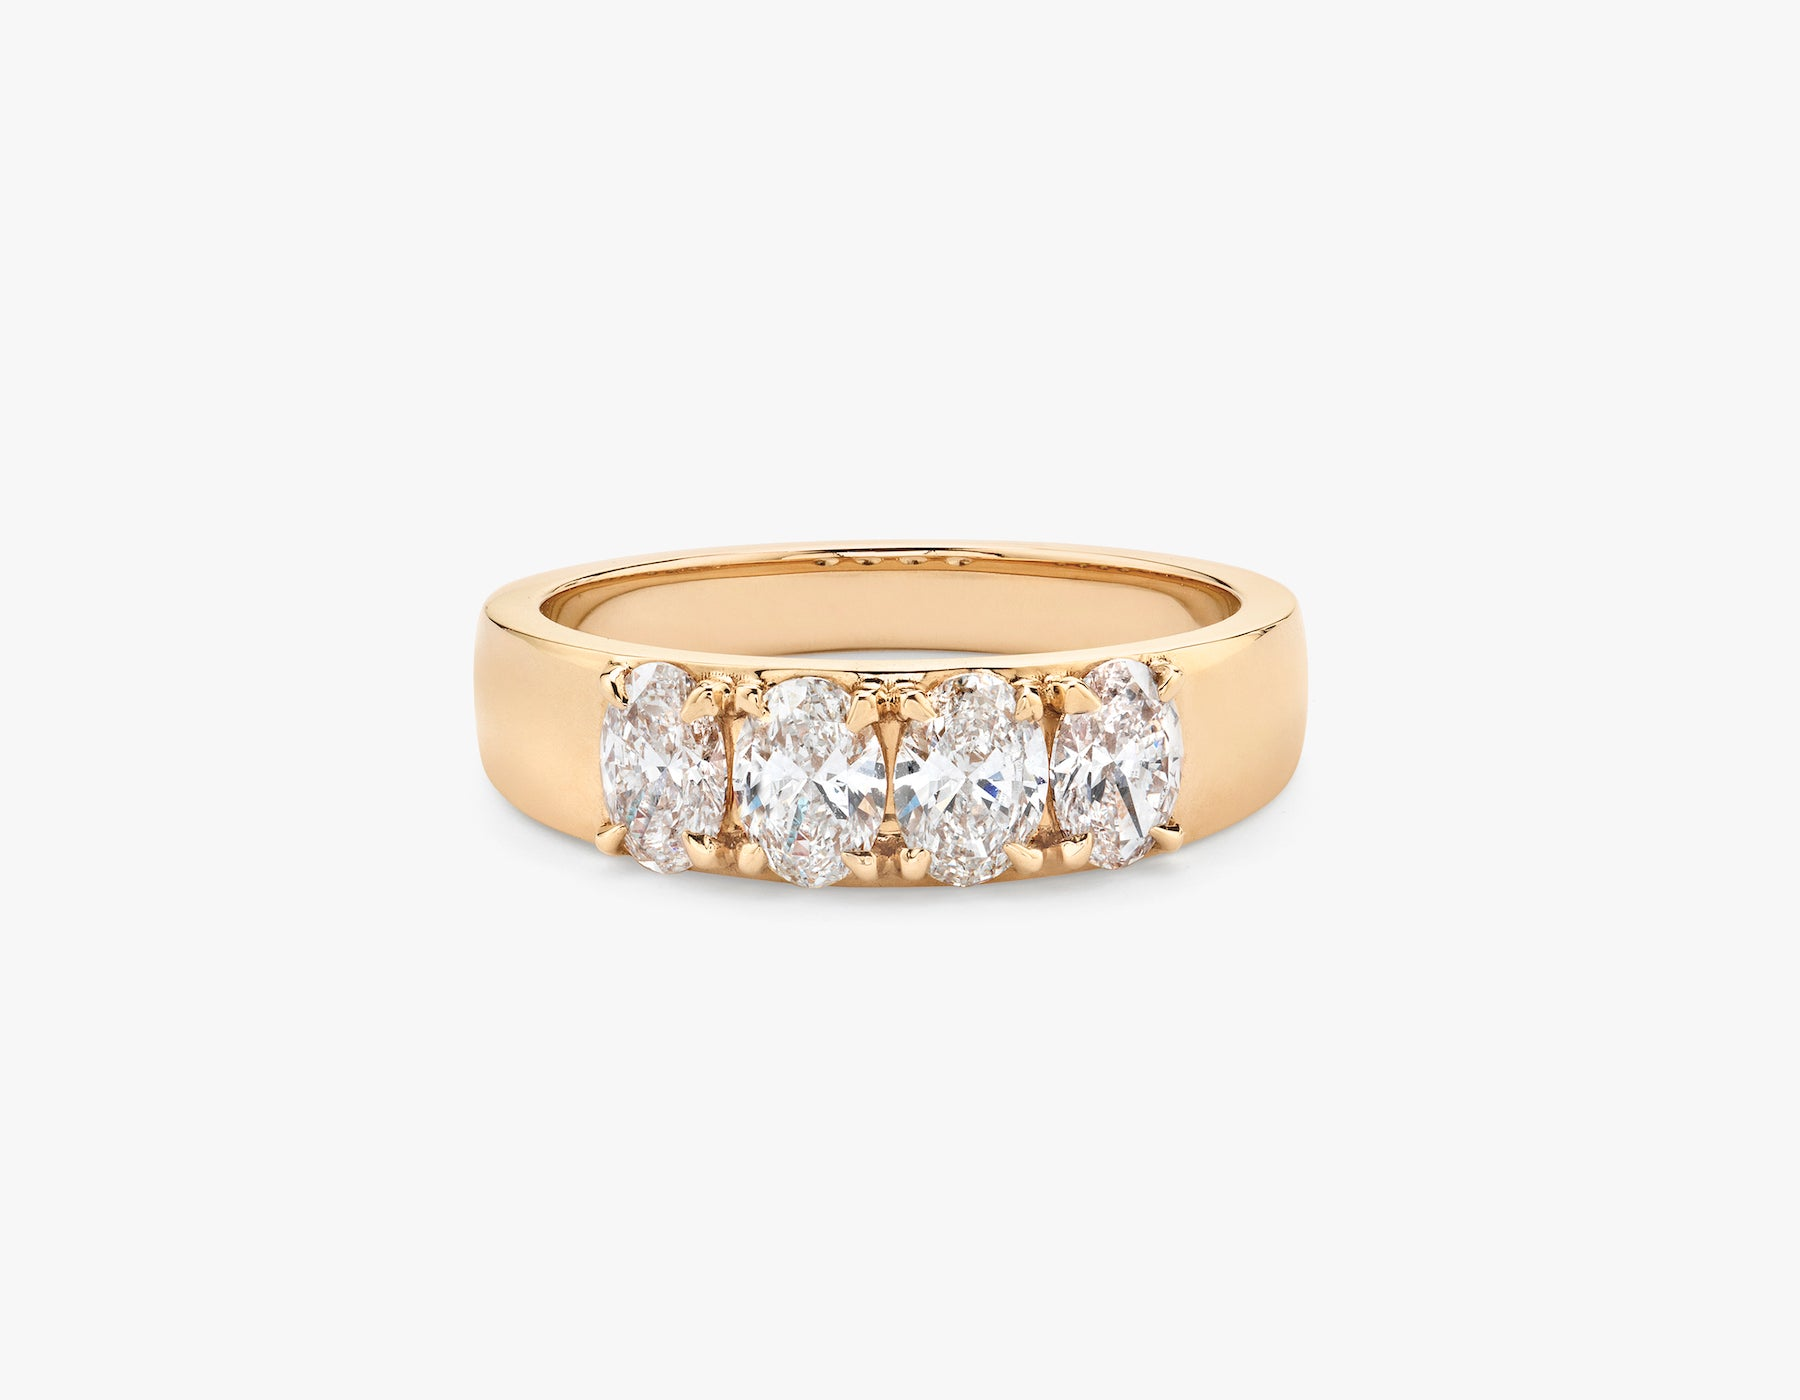 Vrai simple minimalist Oval Diamond Tetrad Band .25ct Oval Diamond Ring, 14K Rose Gold